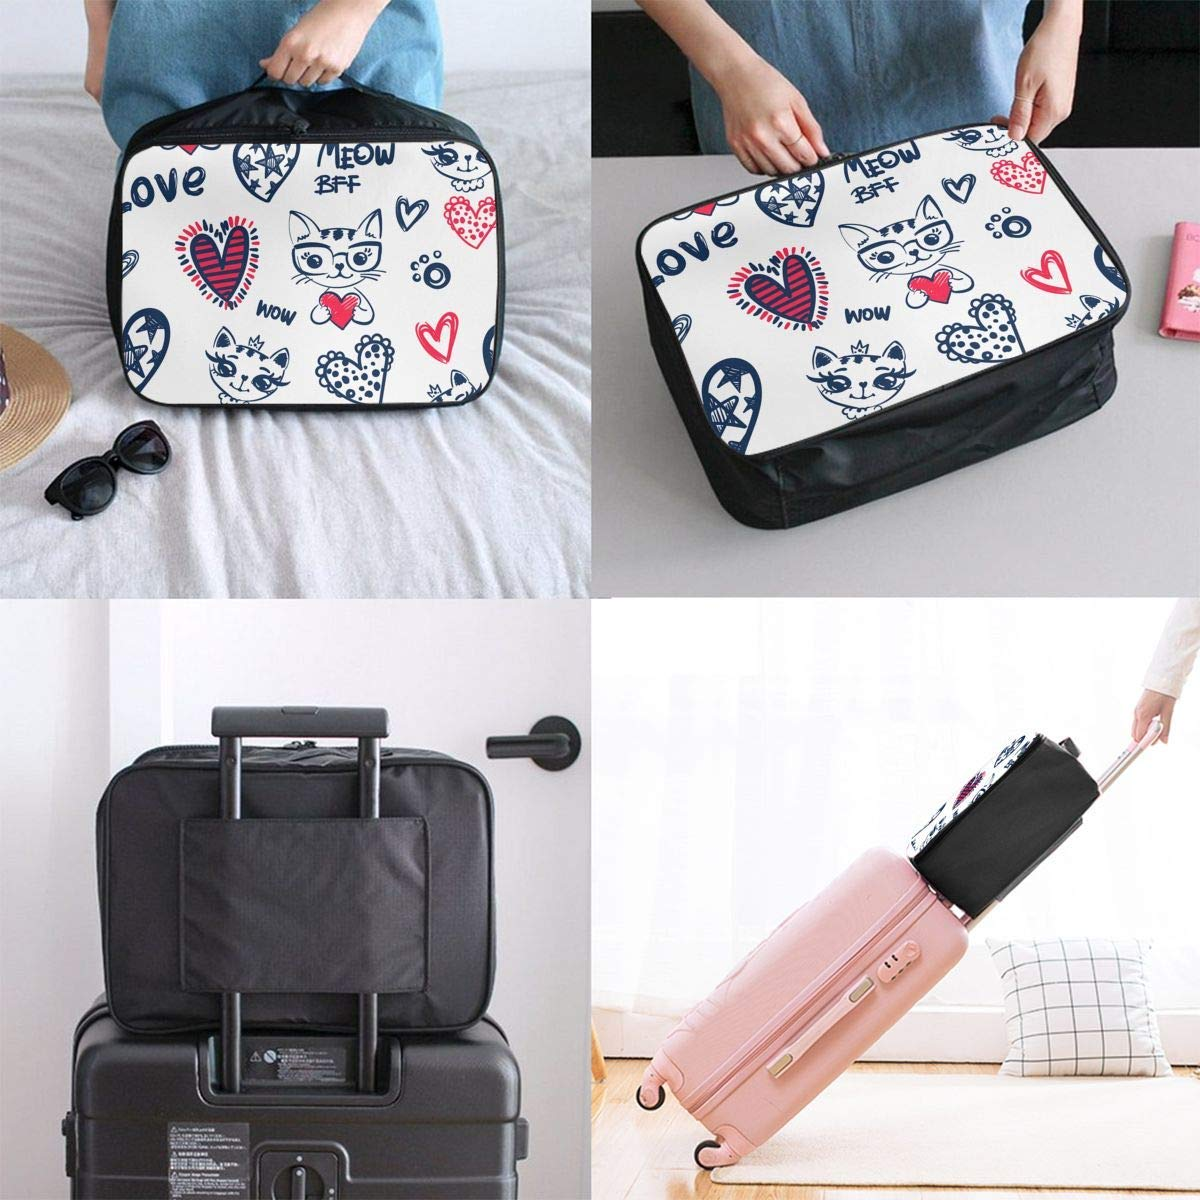 JTRVW Luggage Bags for Travel Meow Lovely Cat Pink Heart Travel Duffel Bag Waterproof Fashion Lightweight Large Capacity Portable Duffel Bag for Men /& Women